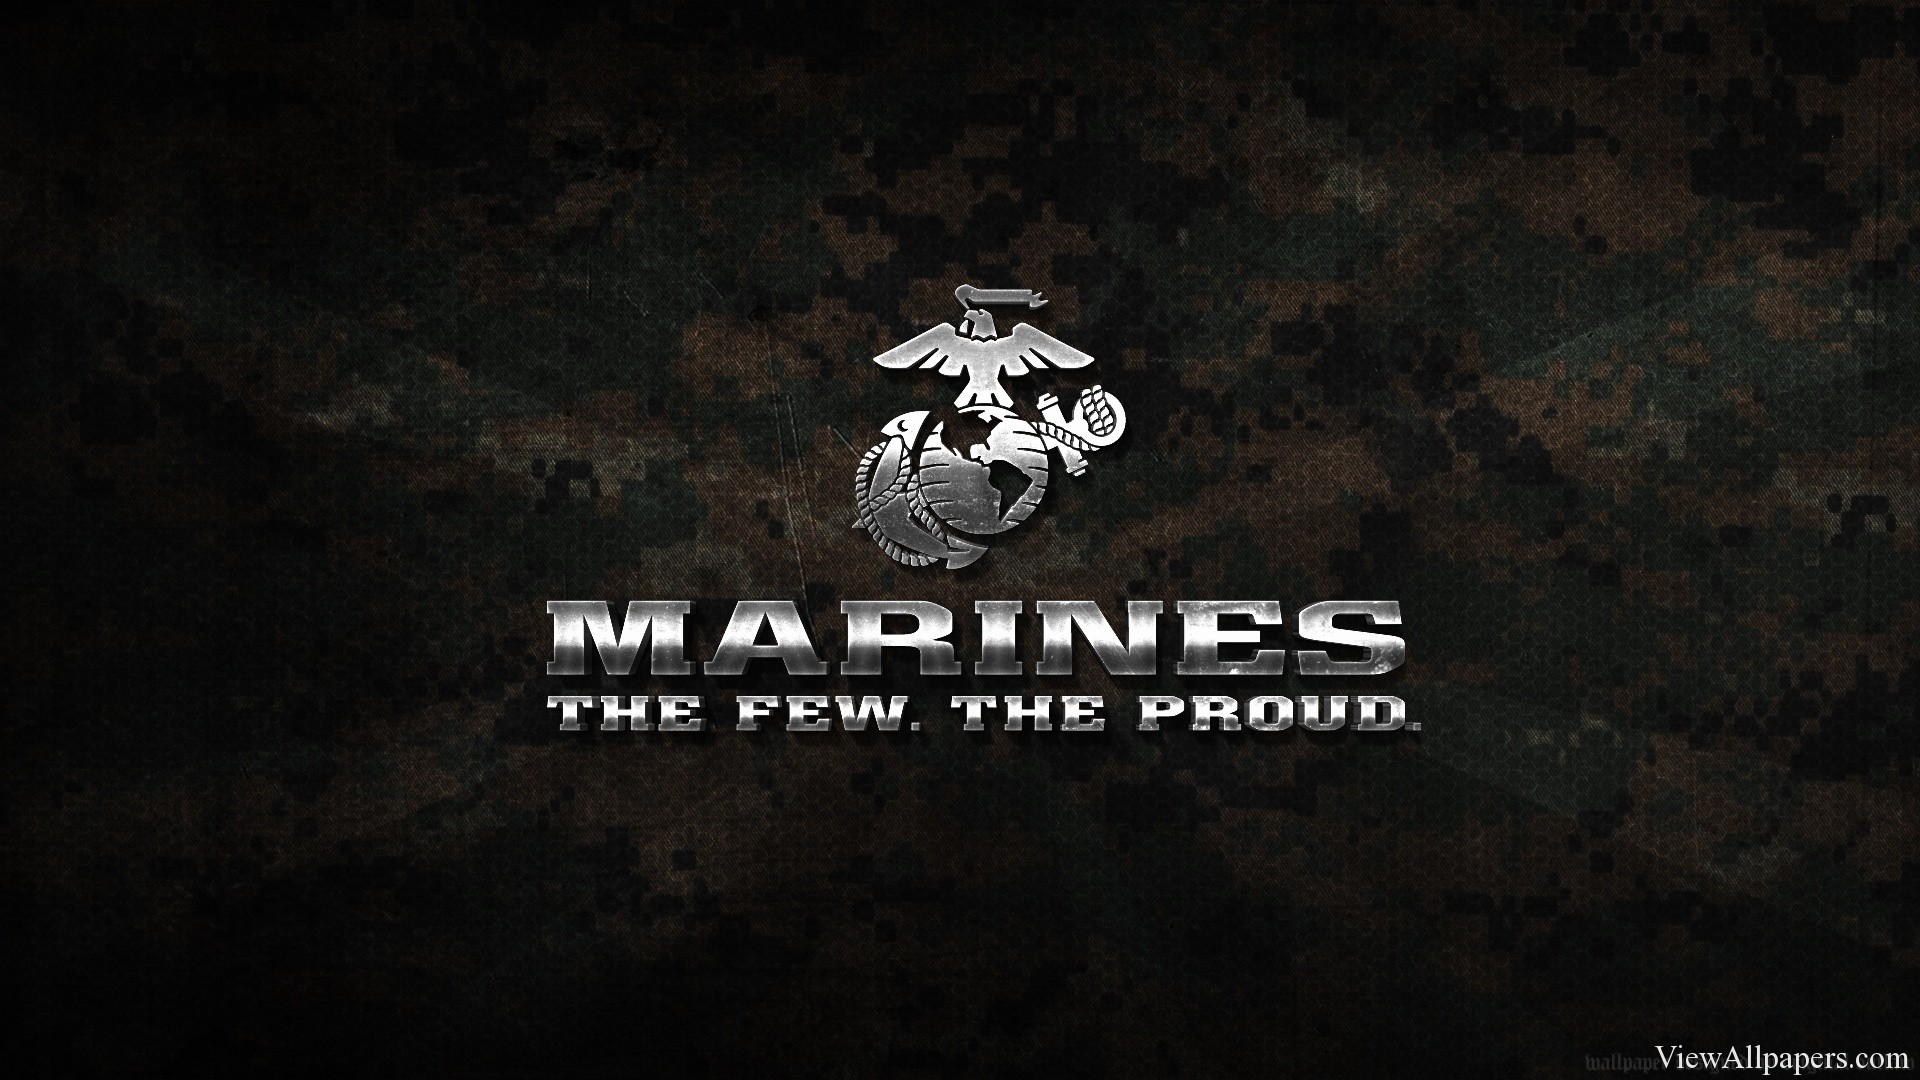 1920x1080 Marine Corps Logo High Resolution, Free download Marine Corps Logo For .